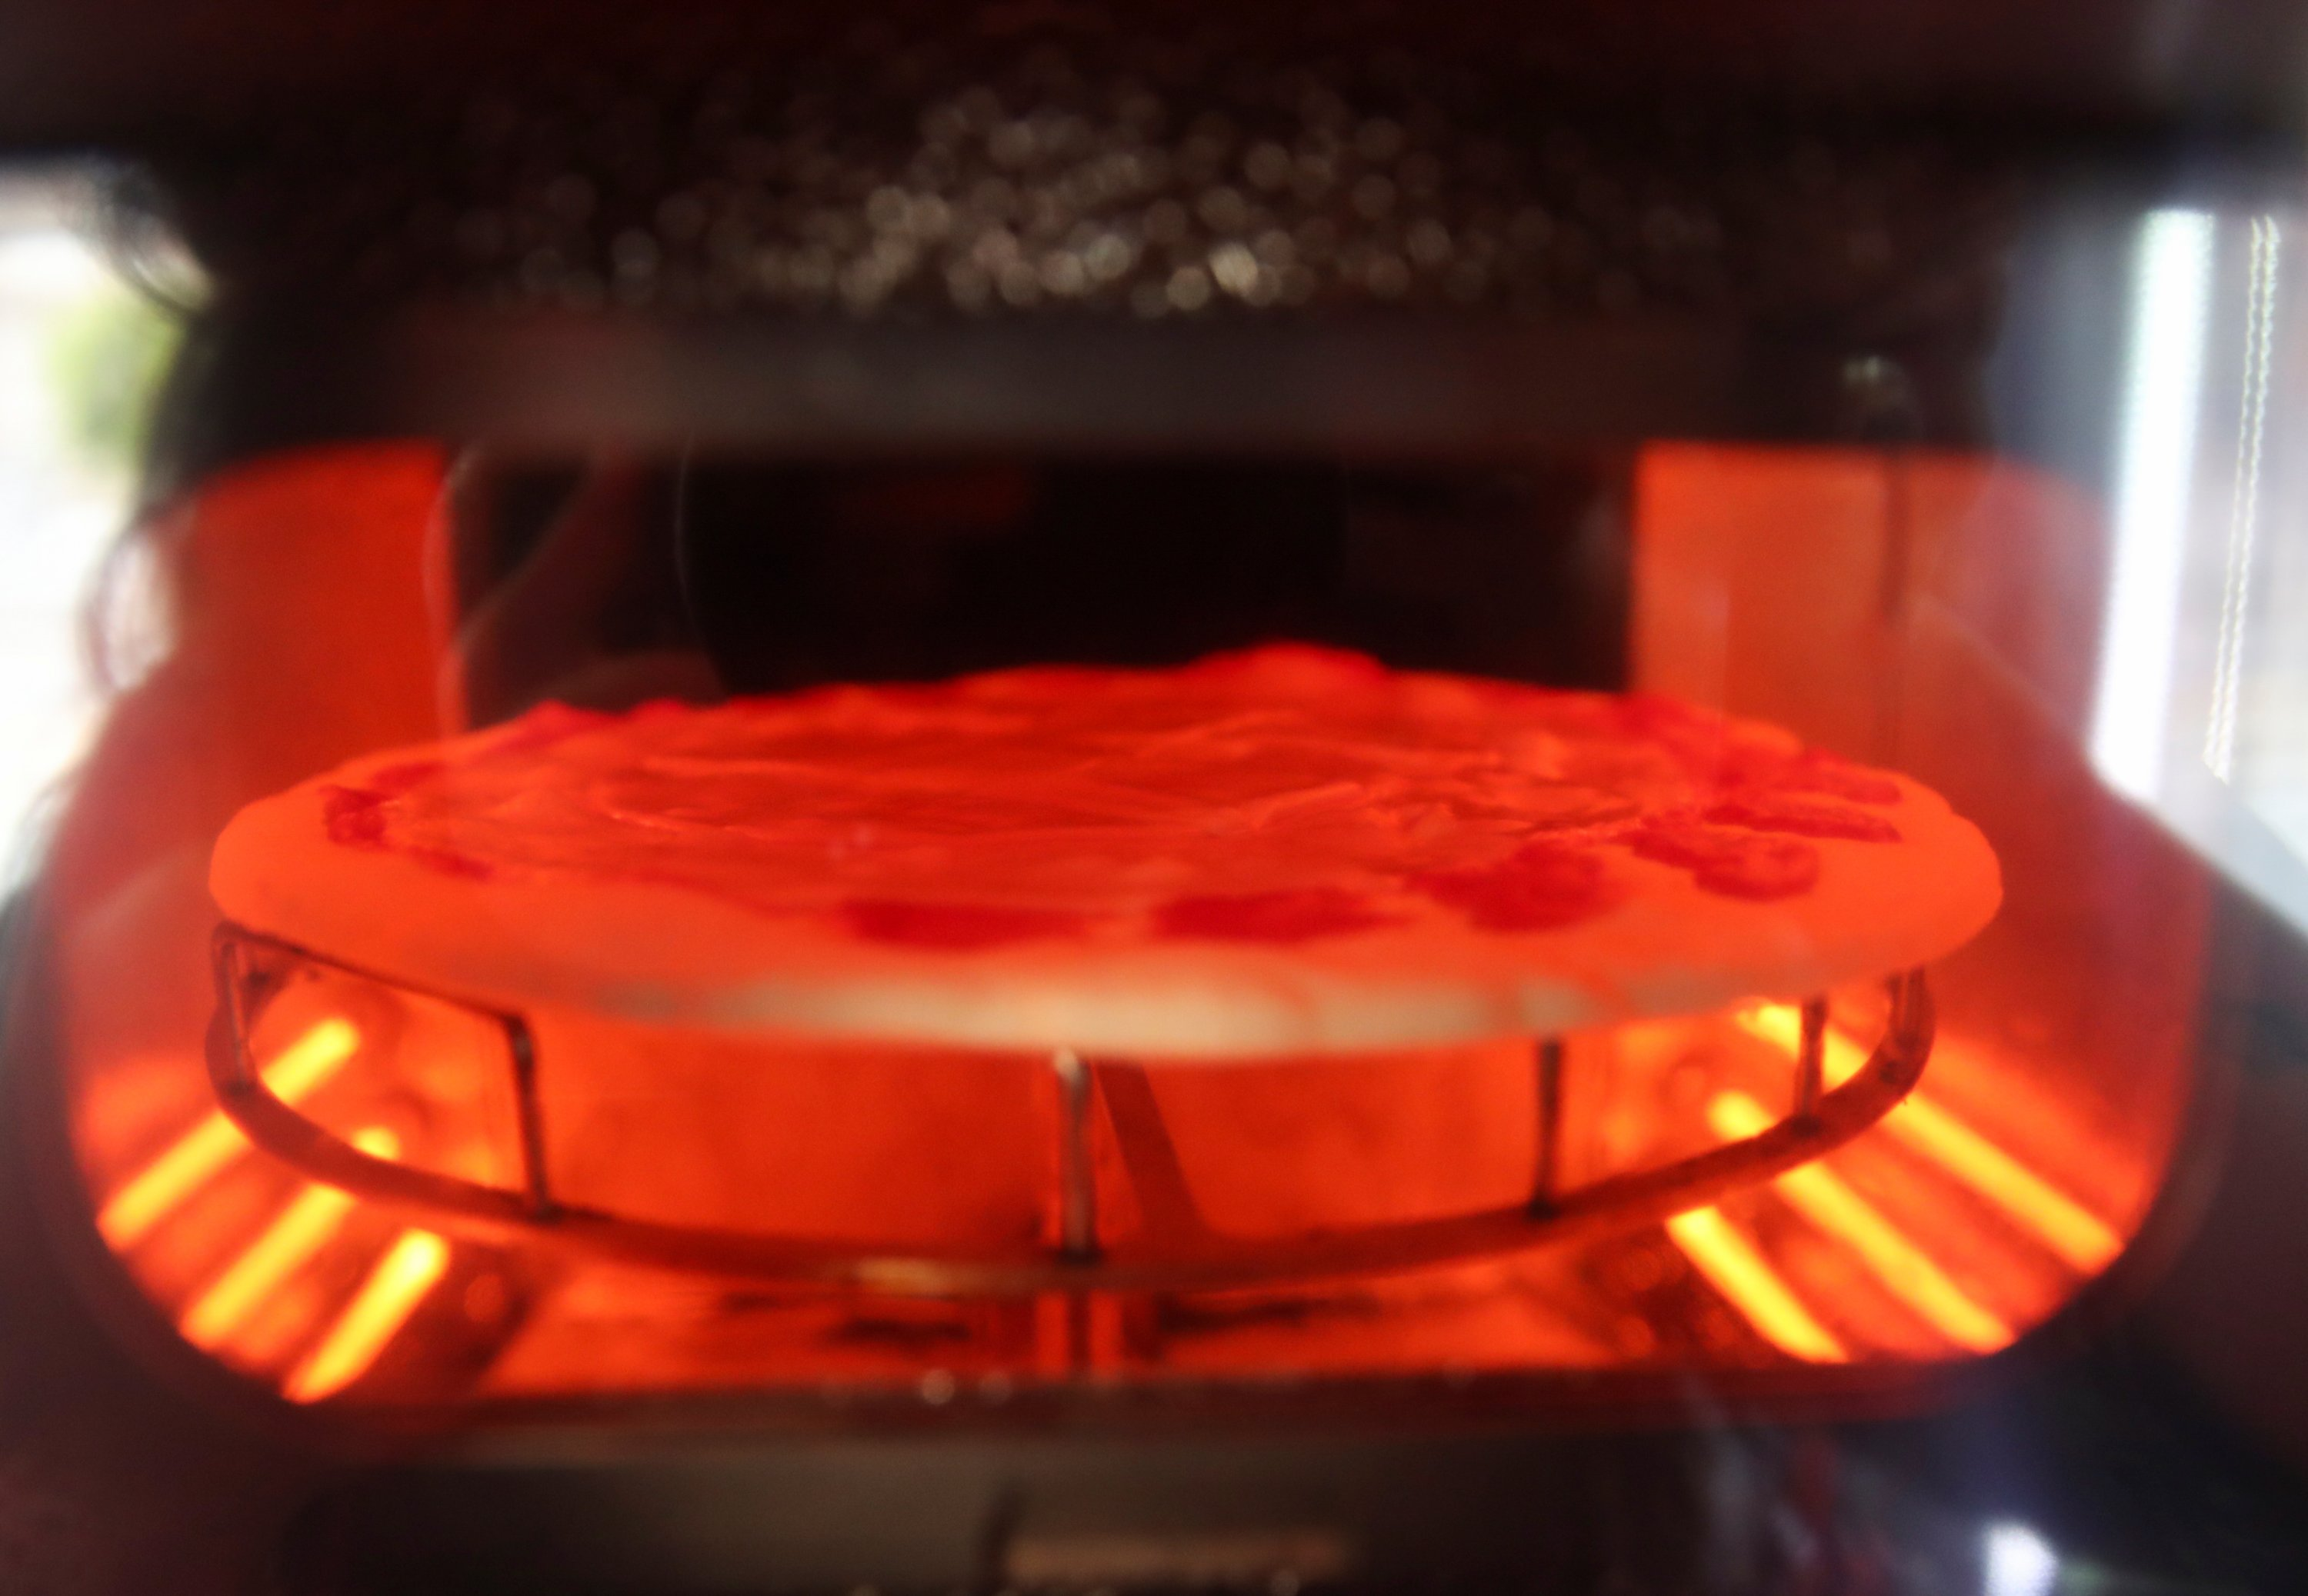 A pizza being baked is seen in the first automatic pizza vending machine, which is capable of kneading, seasoning and cooking the pizza in three minutes, in Rome, Italy, May 6, 2021. (Reuters Photo)